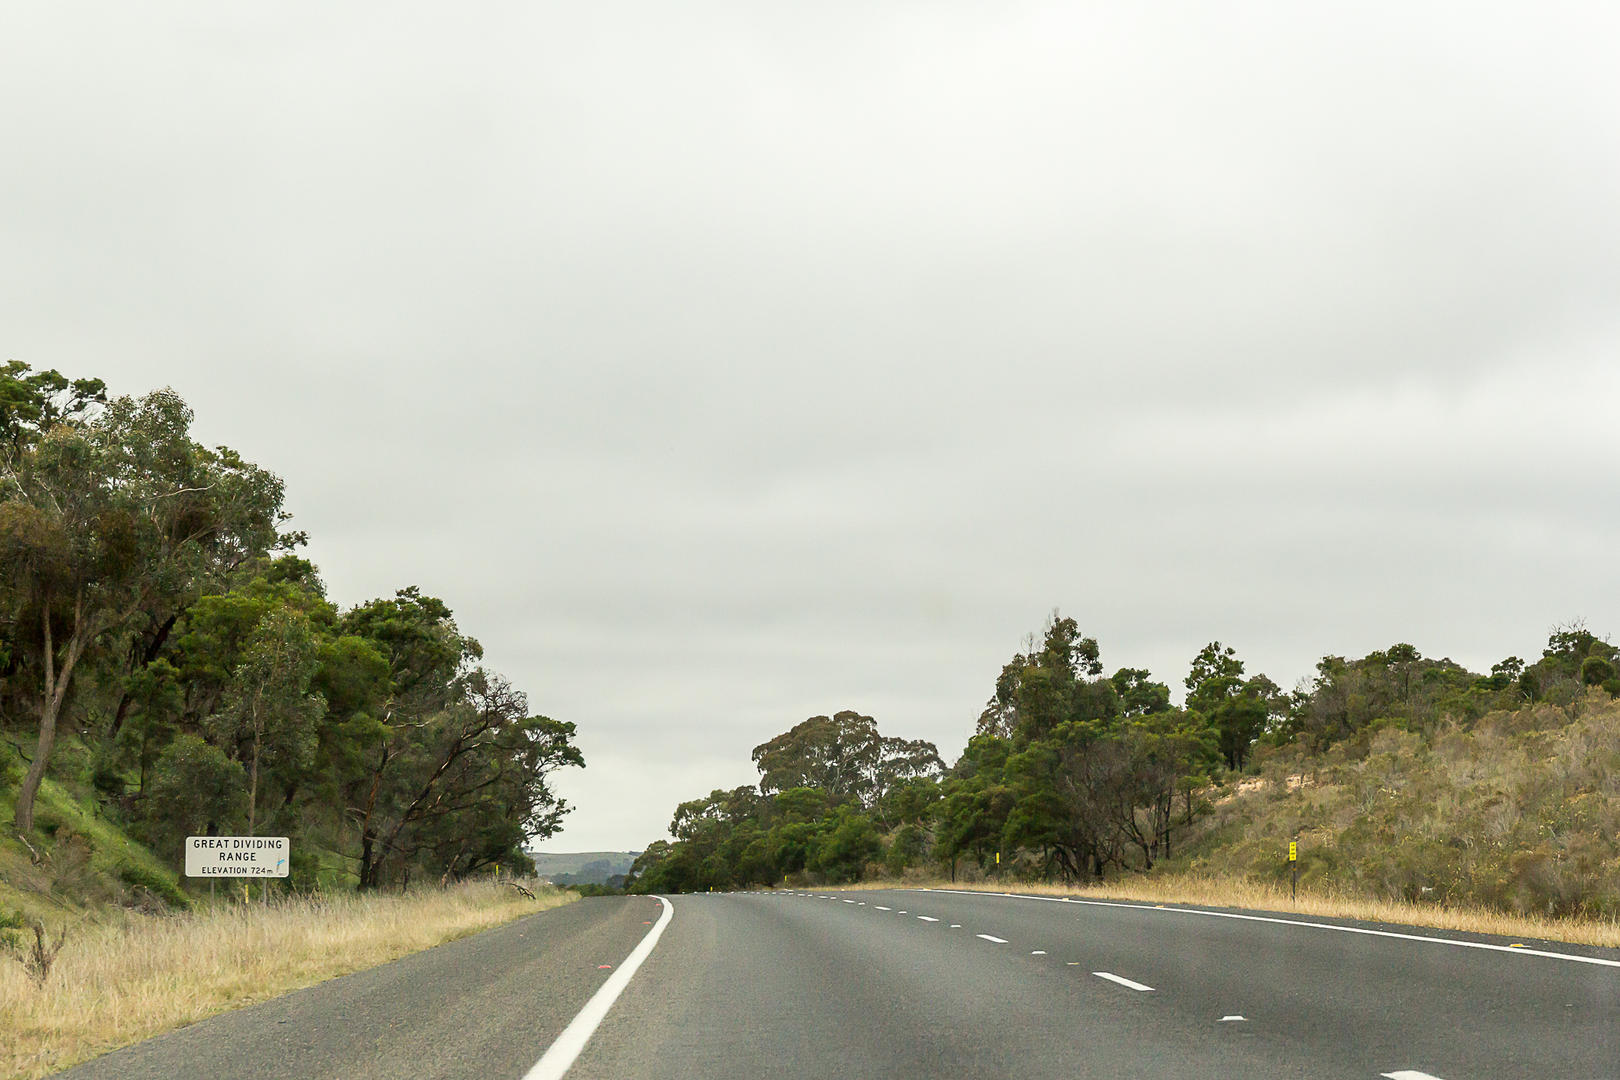 The Highway 28